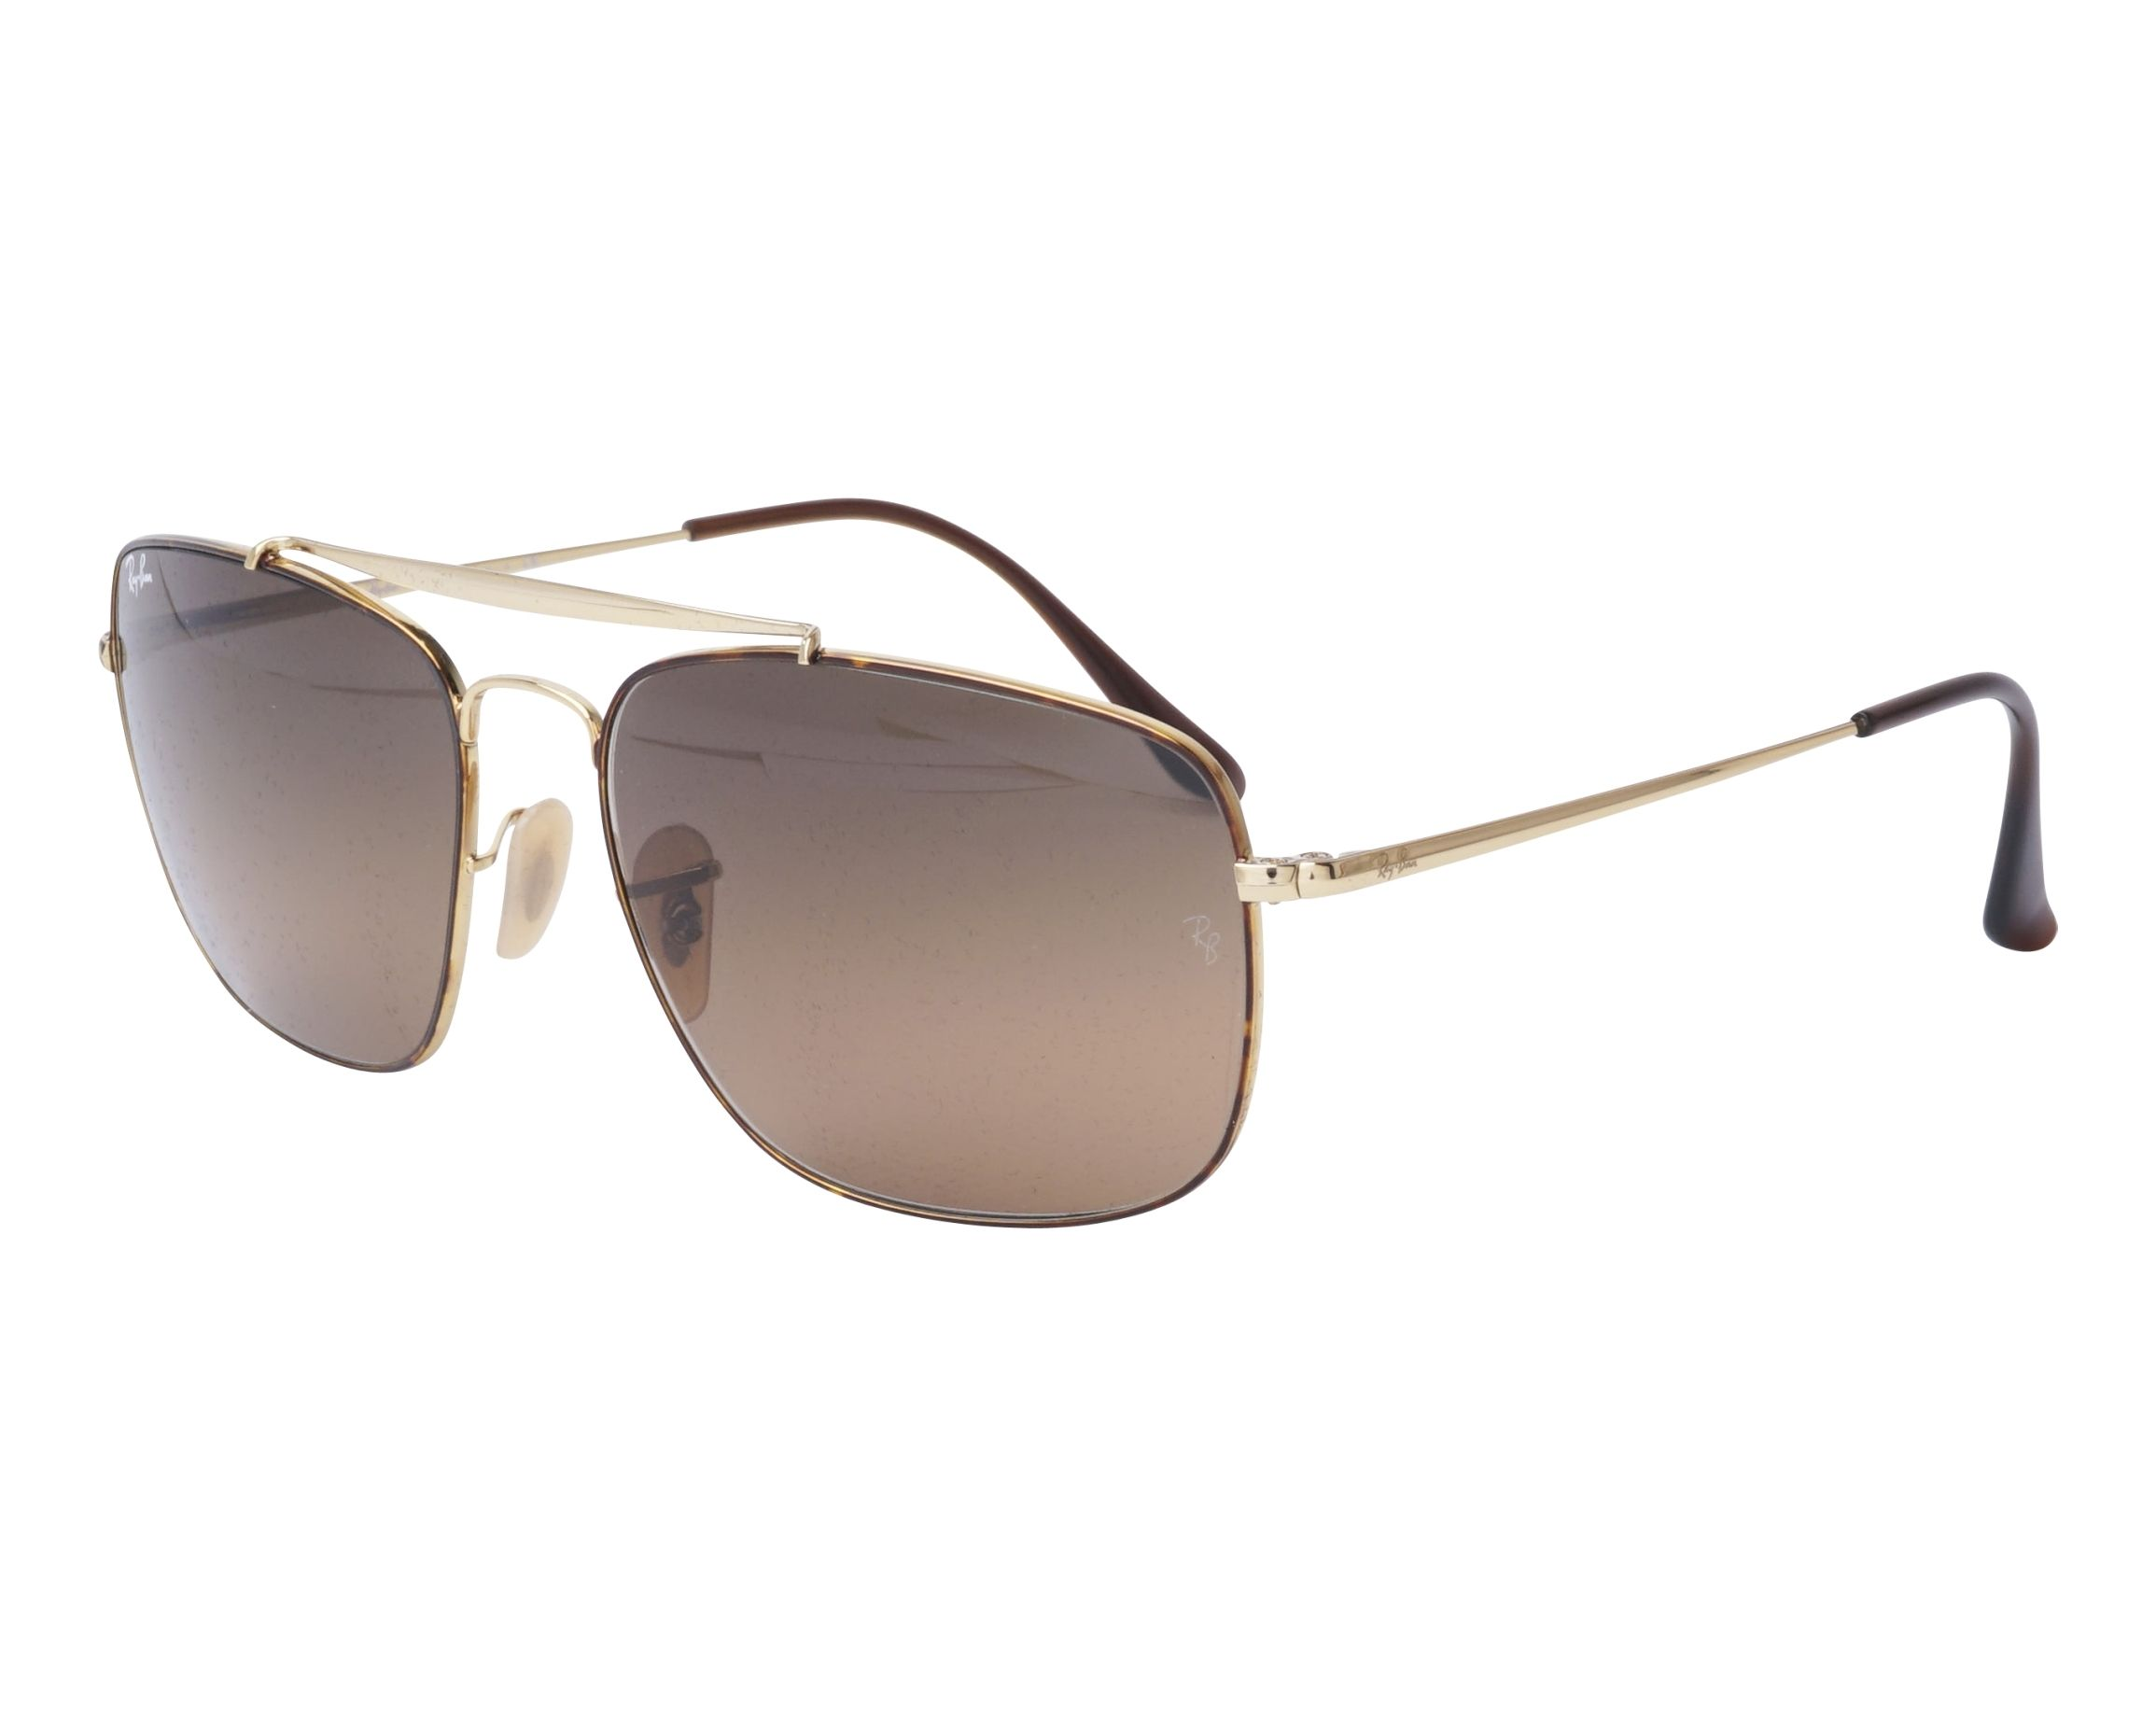 bc2794500829 Sunglasses Ray-Ban RB-3560 910443 58-17 Gold Havana profile view